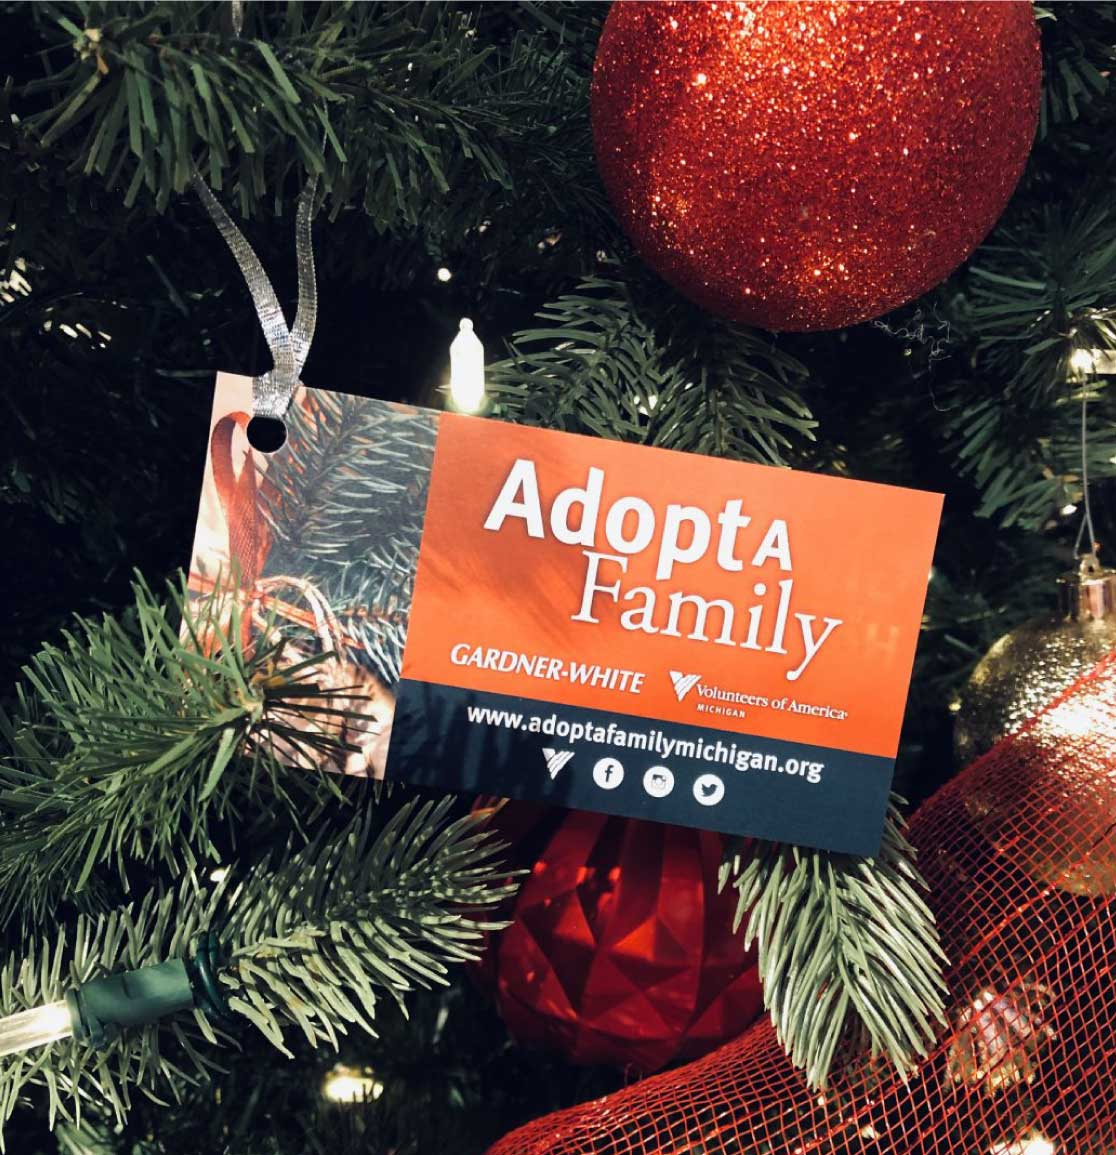 Adopt-A-Family tag on a Christmas tree